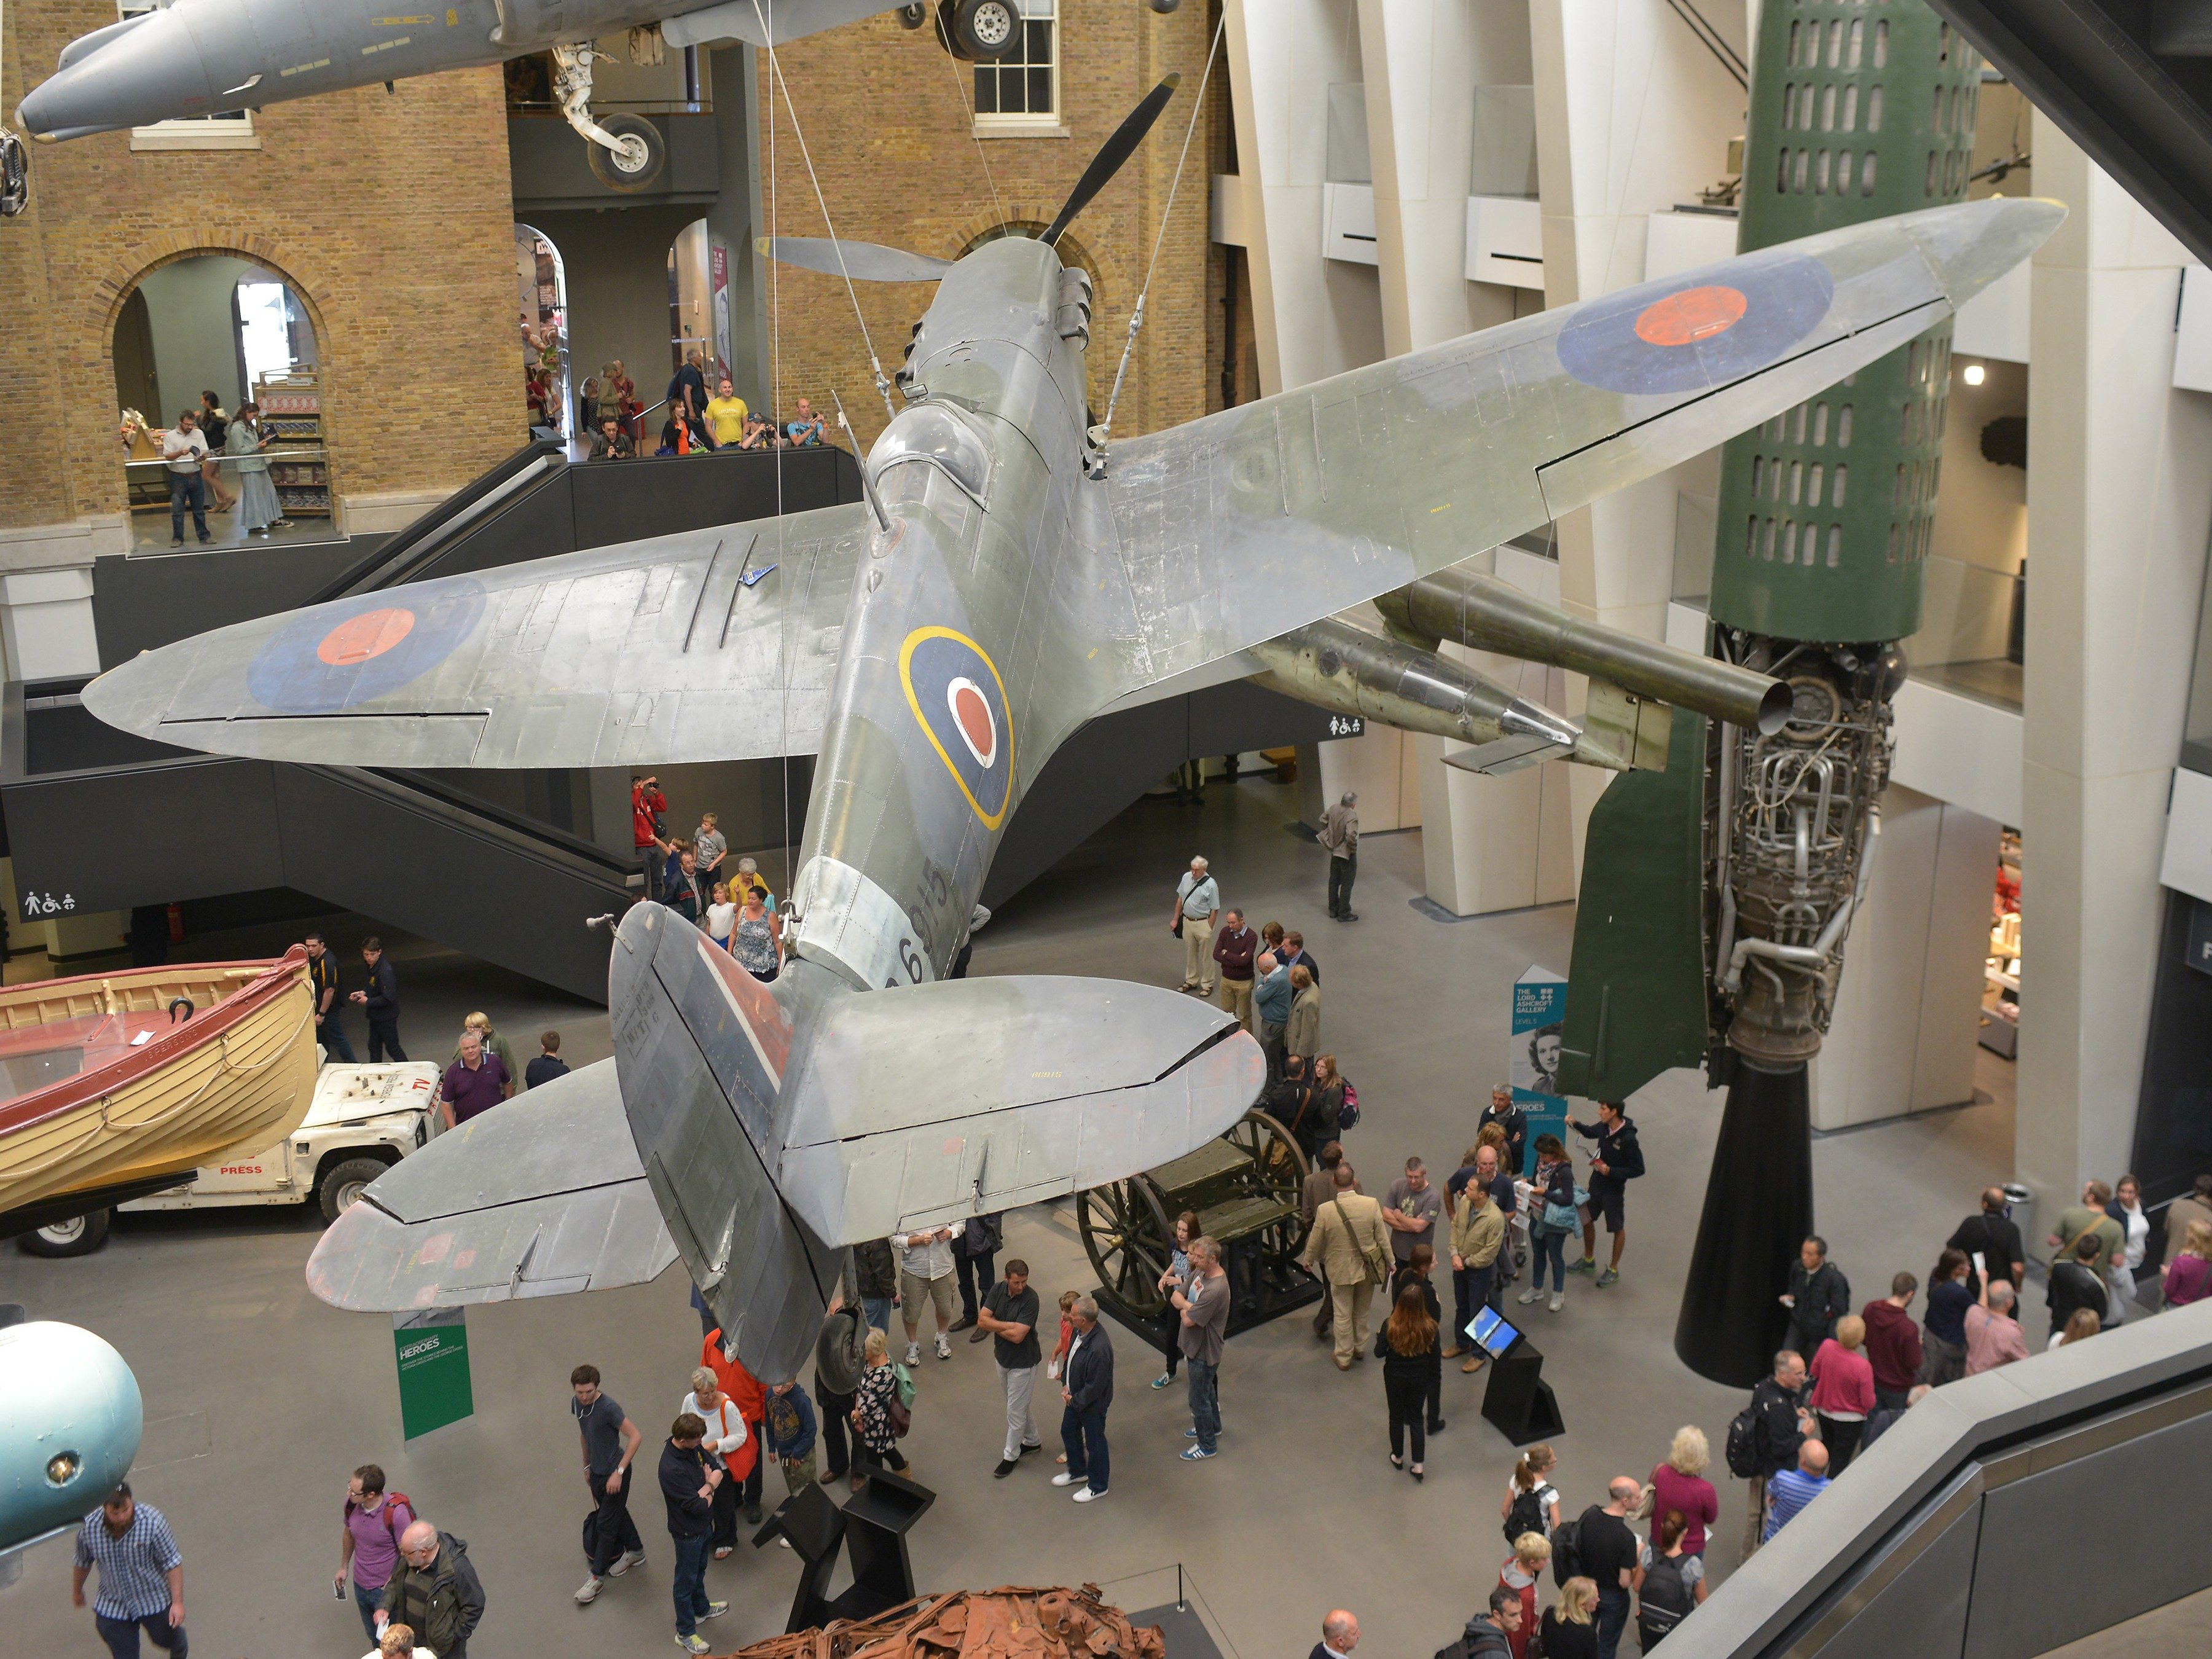 London attractions: Imperial War Museum